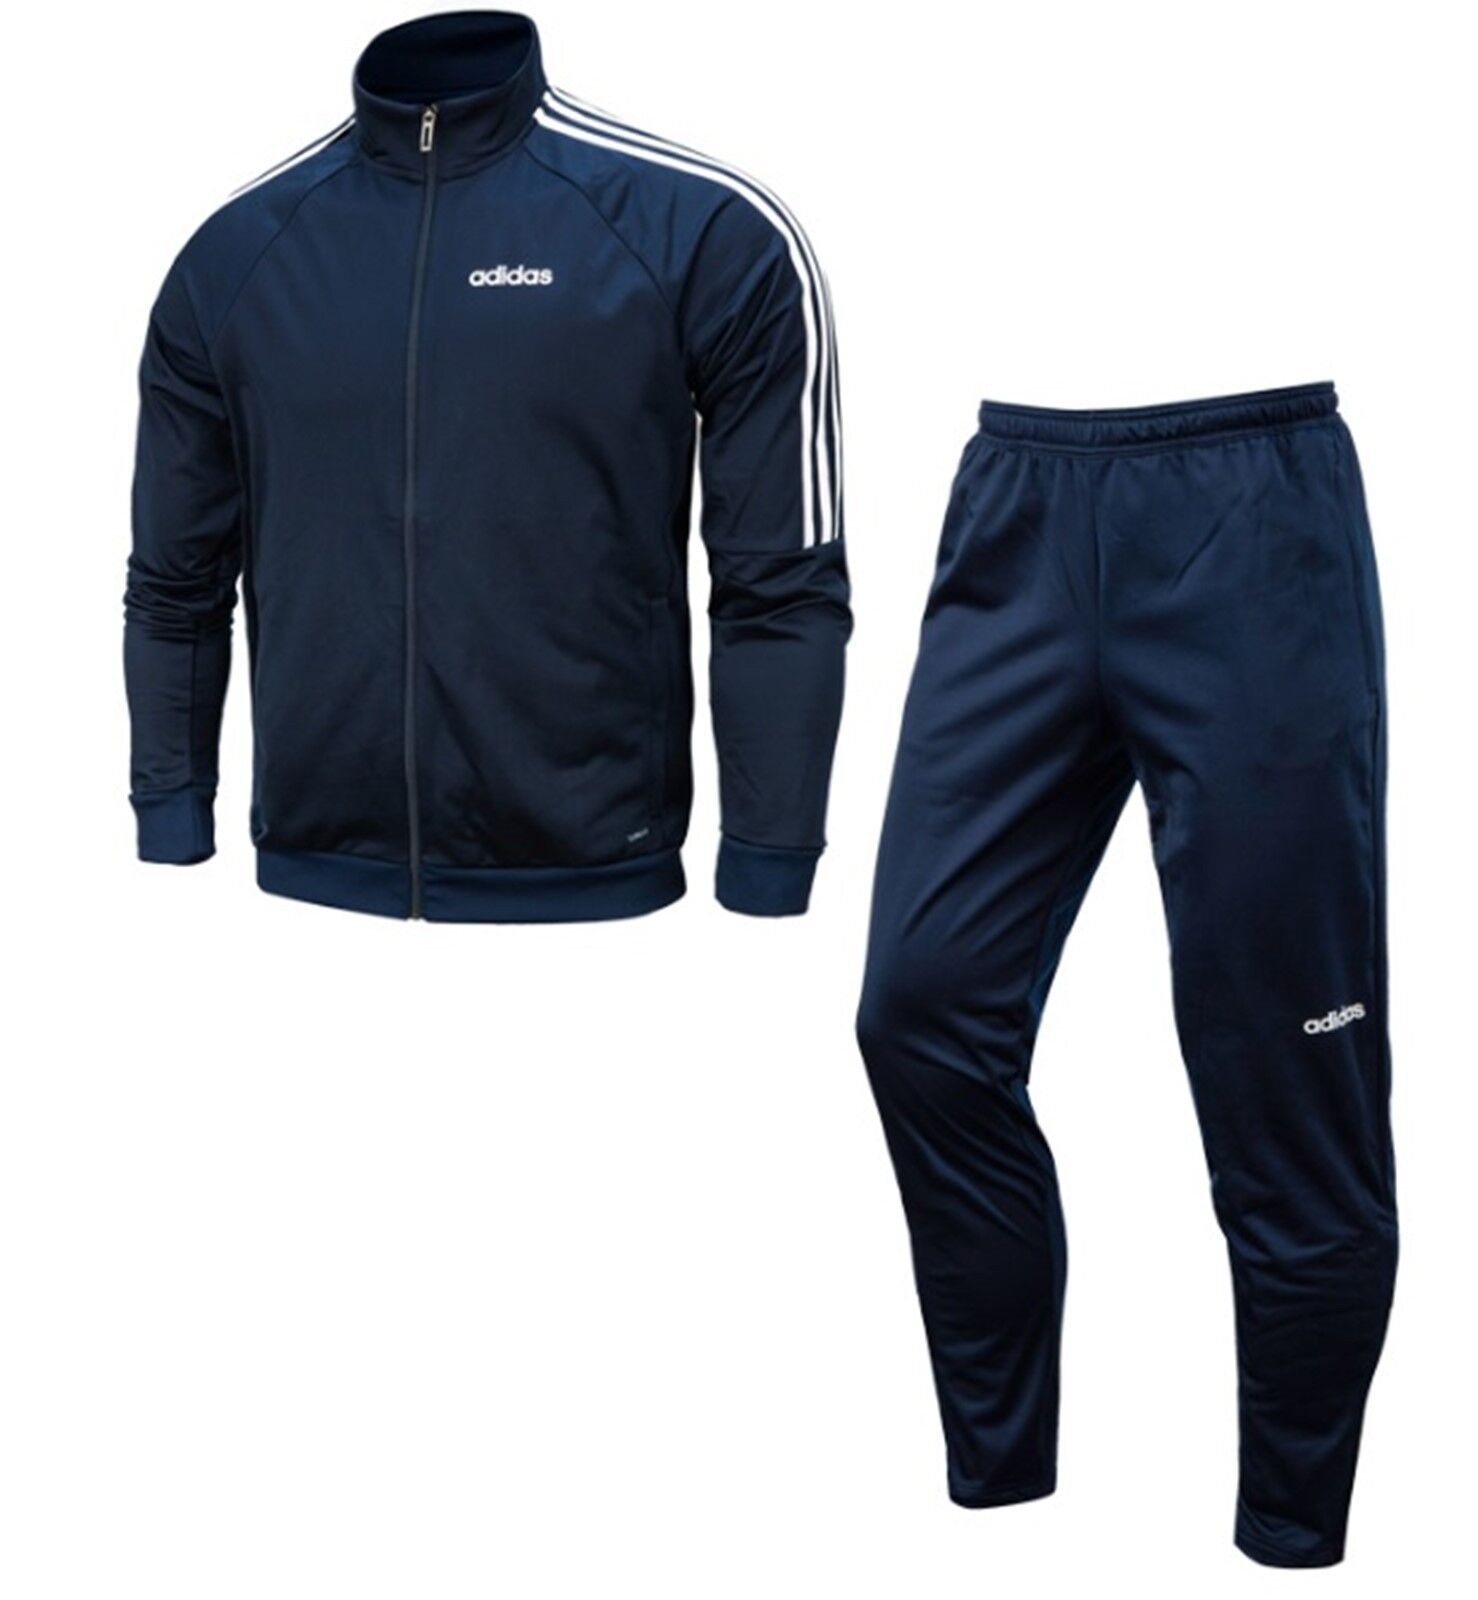 Adidas Men Sereno 19 Jackets Training Suit Set Navy Weiß GYM Jacket Pant DY3142